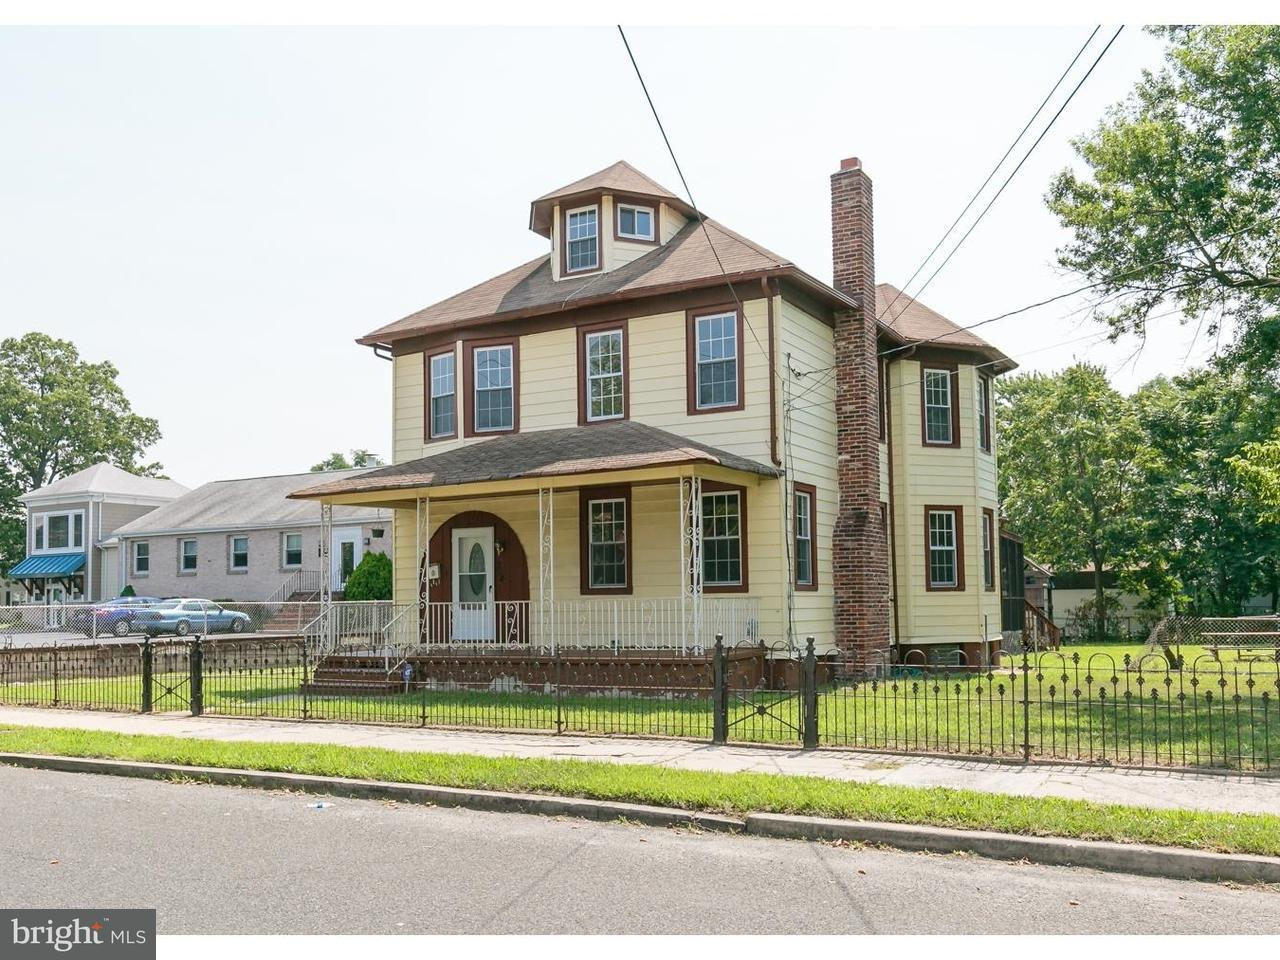 Single Family Home for Sale at 224 E WASHINGTON Street Riverside, New Jersey 08075 United States